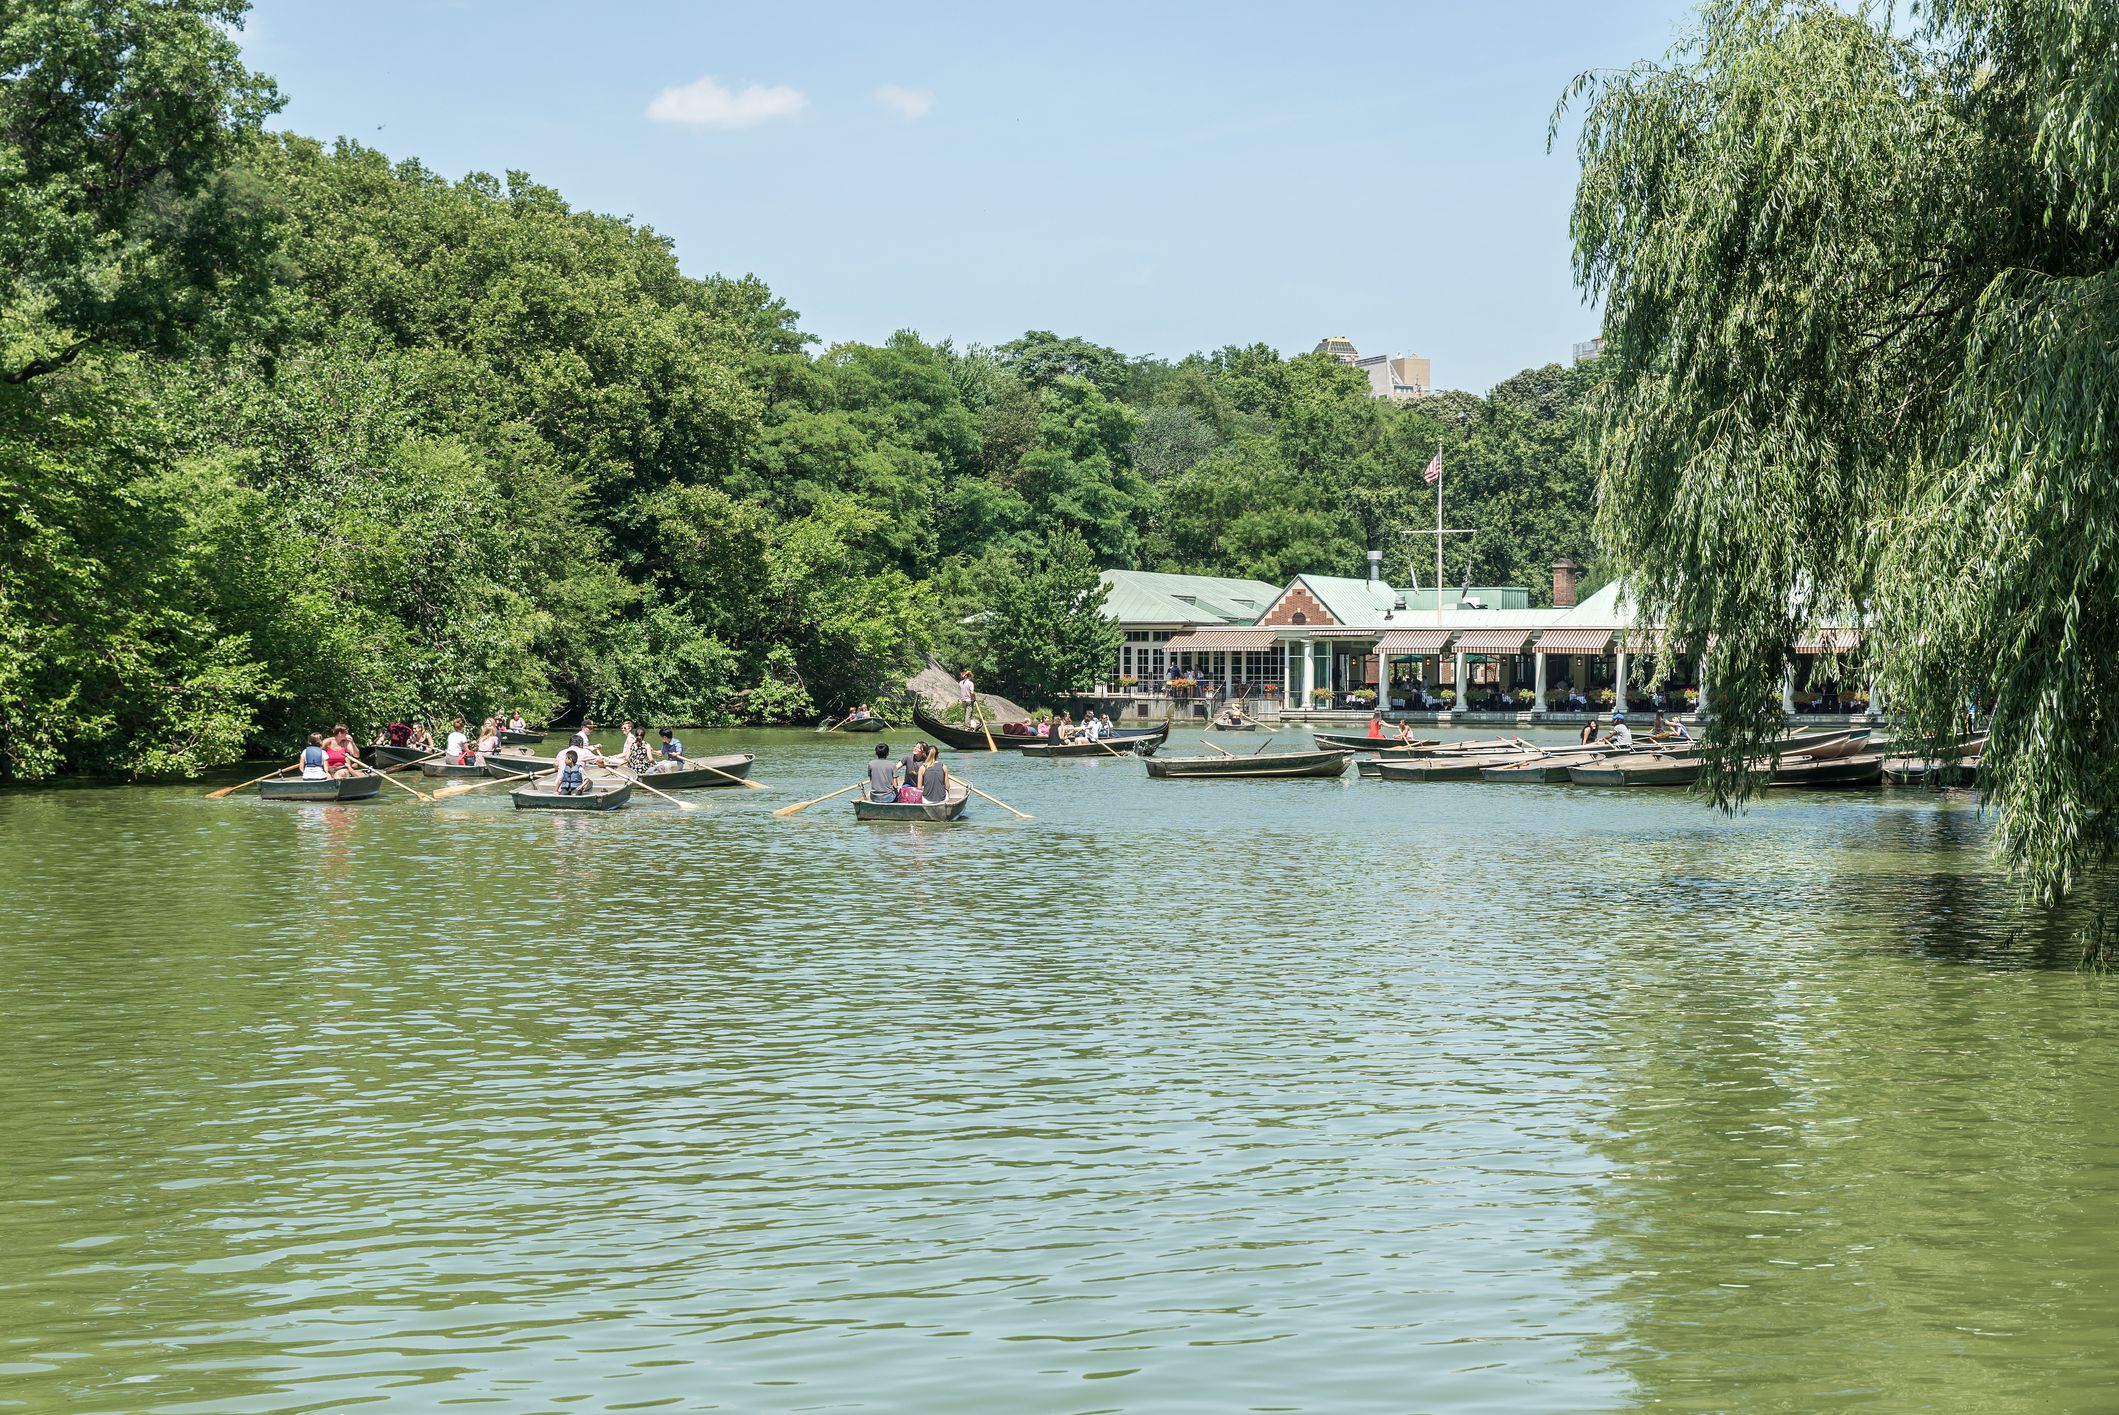 12 Things To Do in Central Park